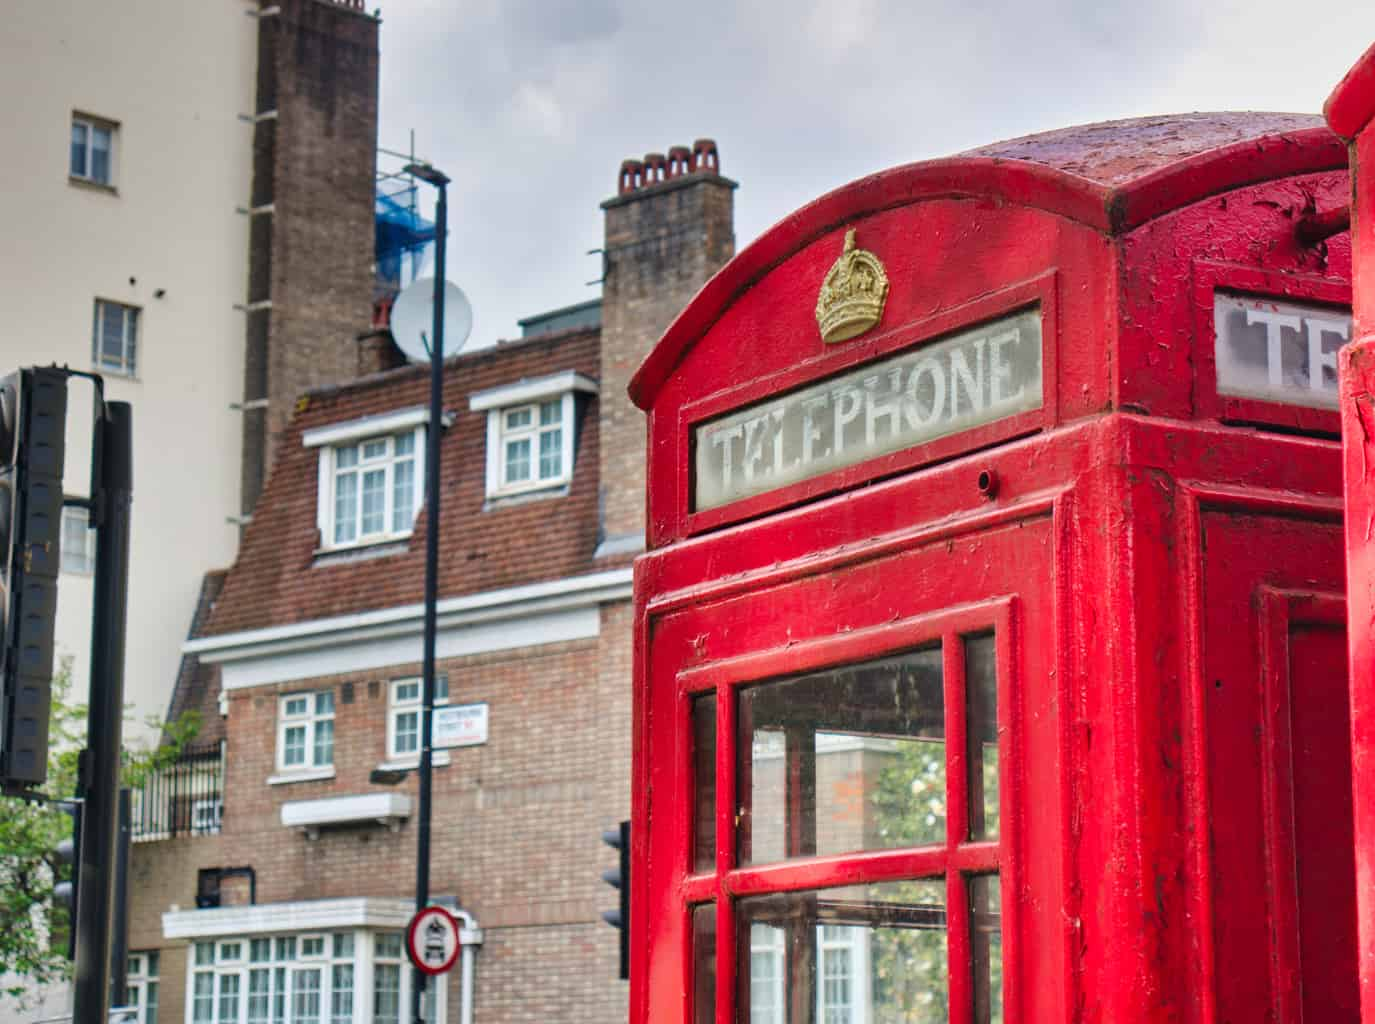 A red telephone booth in London with a building behind